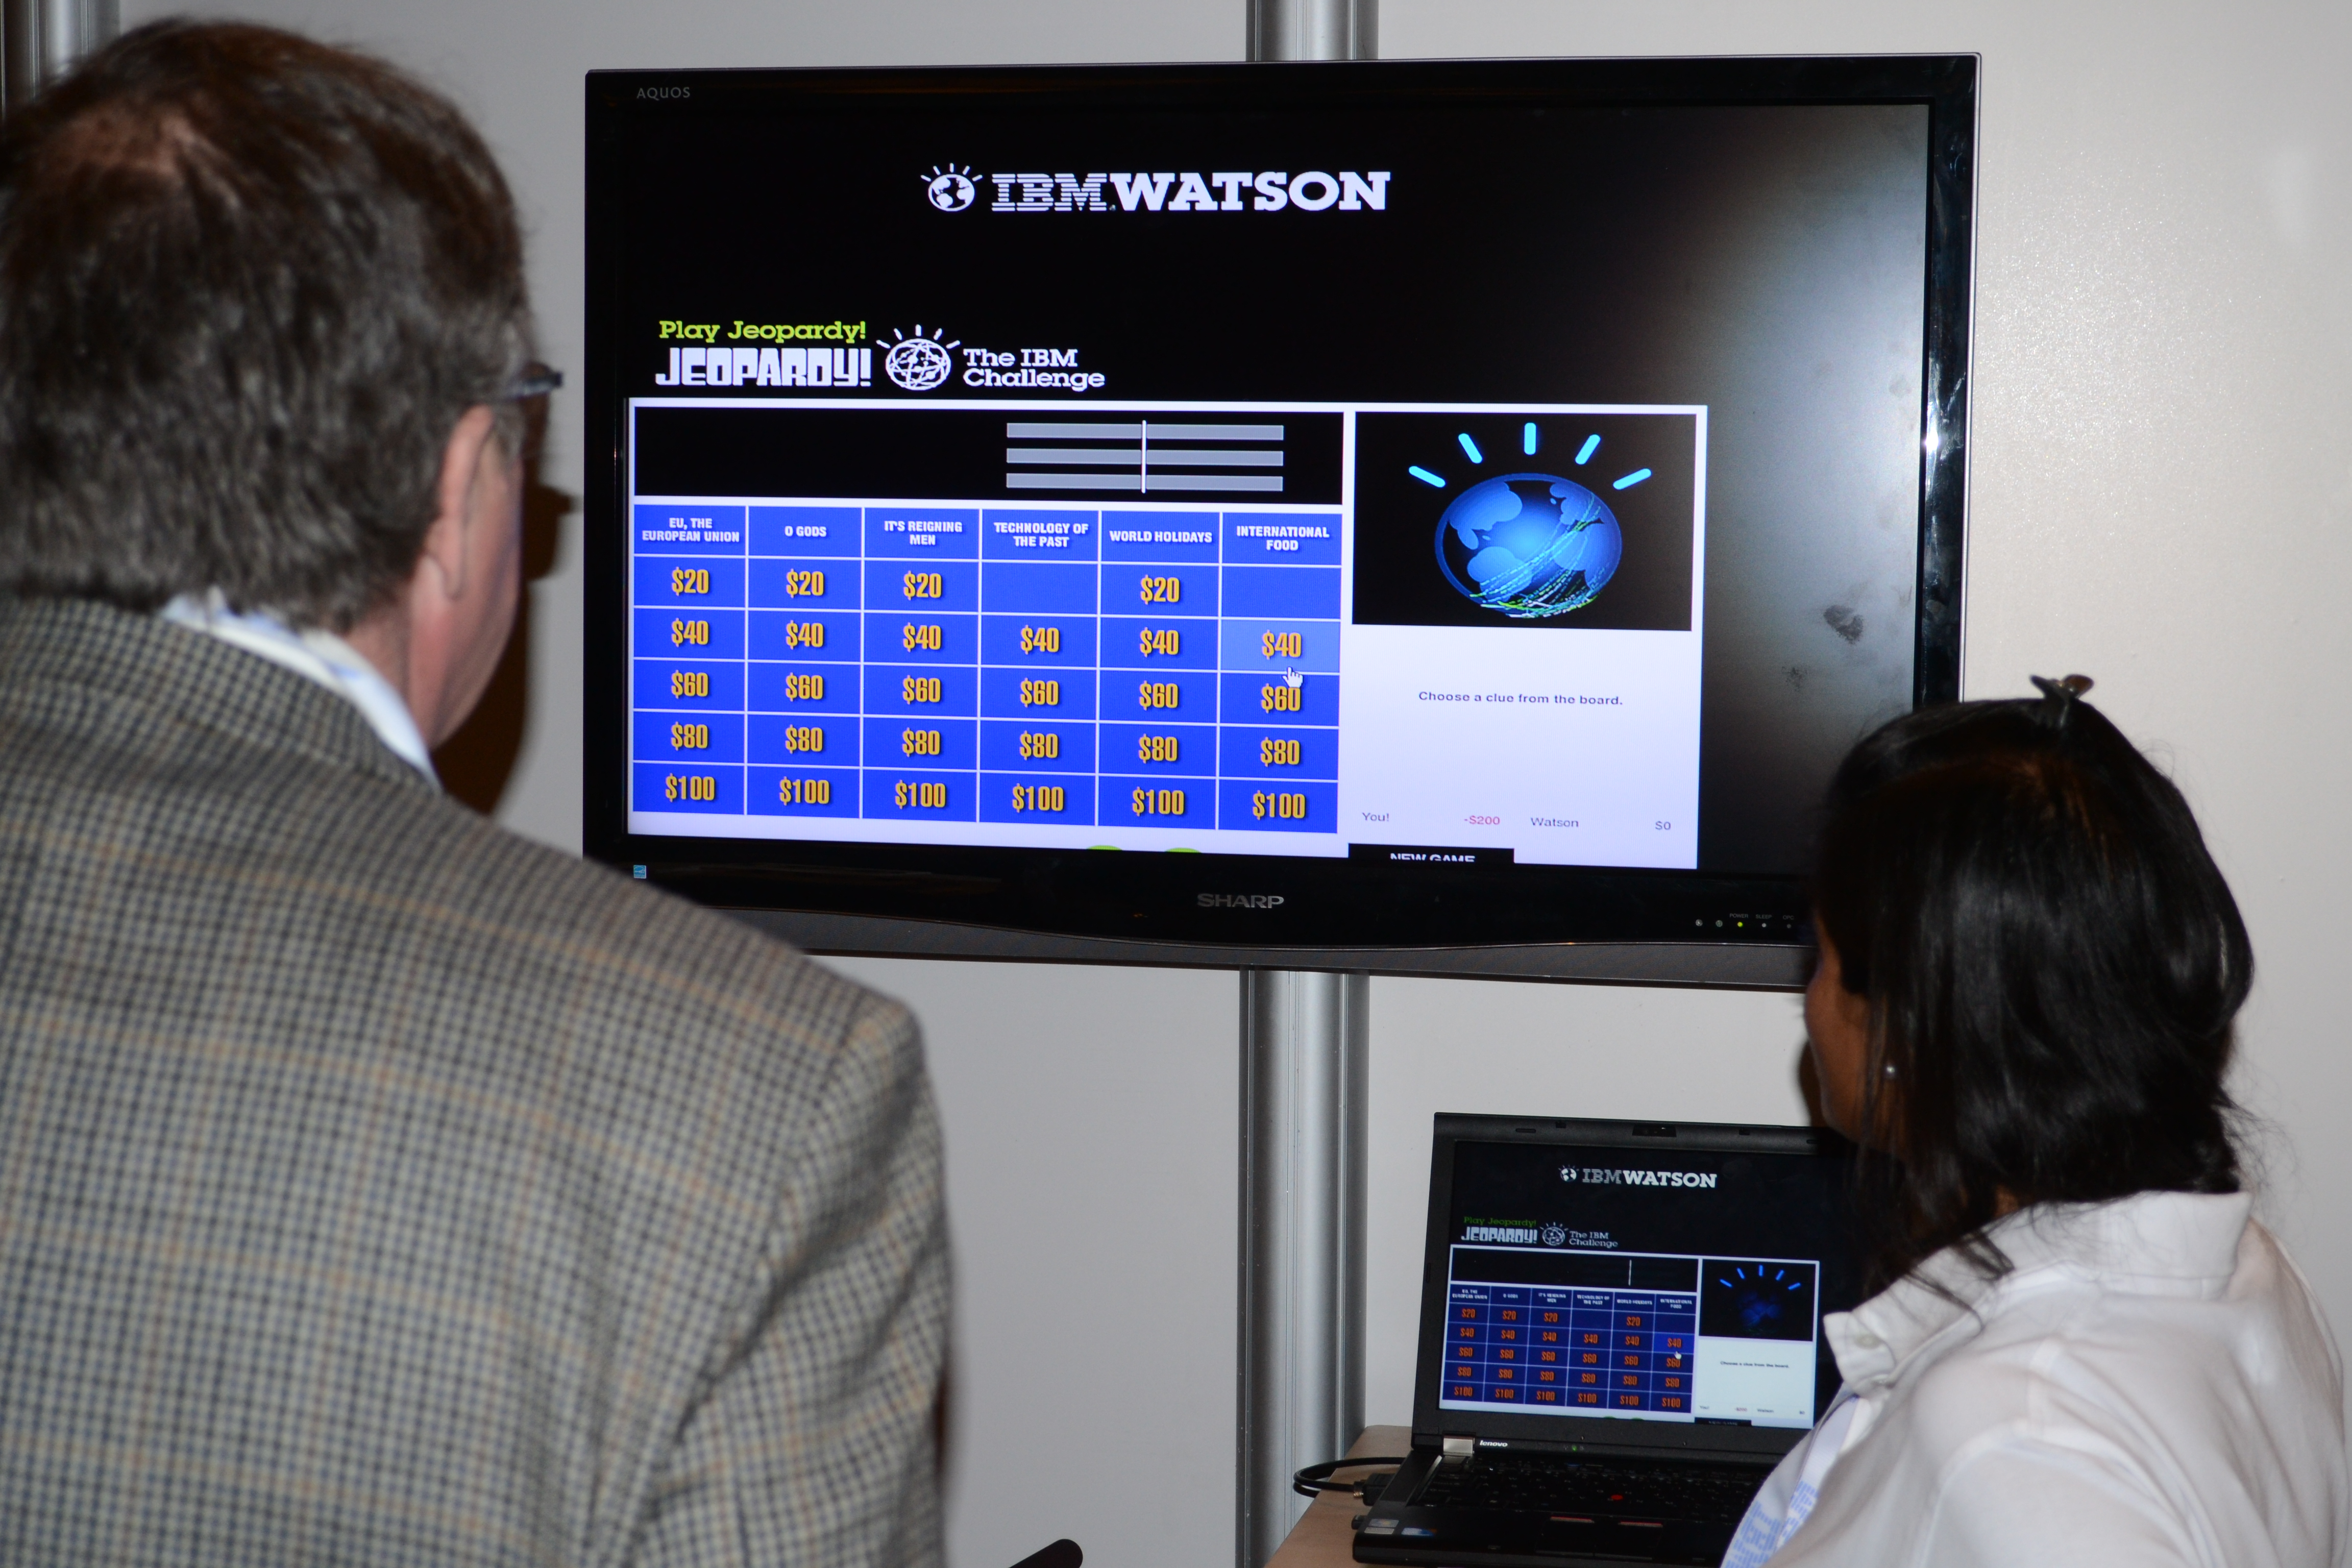 ibm supercomputer watson Watson trounced the humans on jeopardy now ibm is hoping to find ways to make money from the supercomputer.